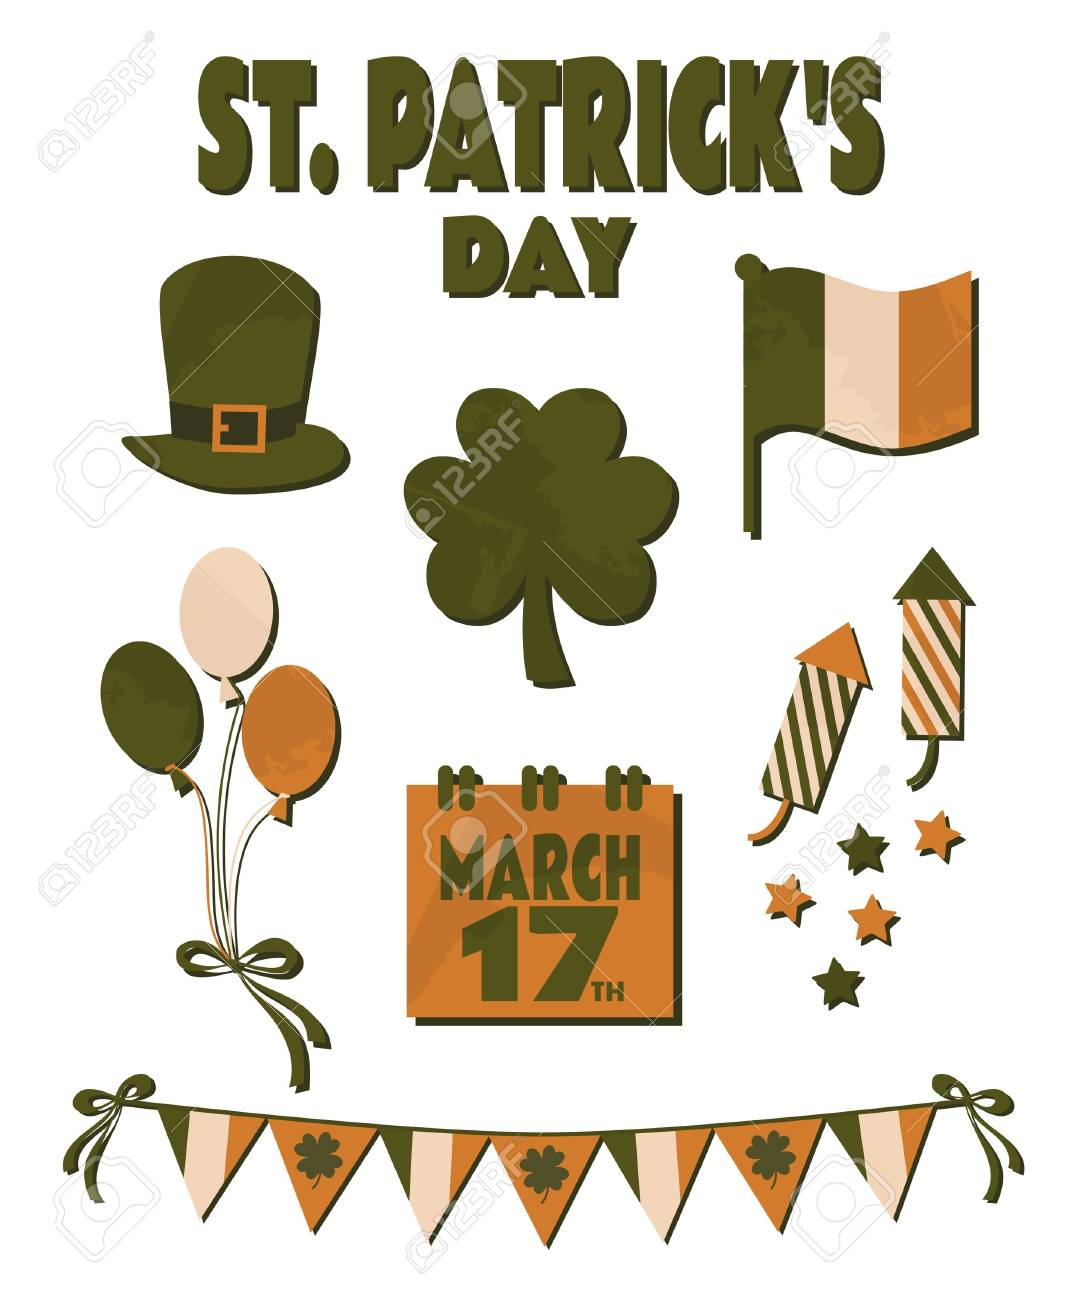 A collection of design elements for St. Patrick's Day. Stock Vector - 17688926